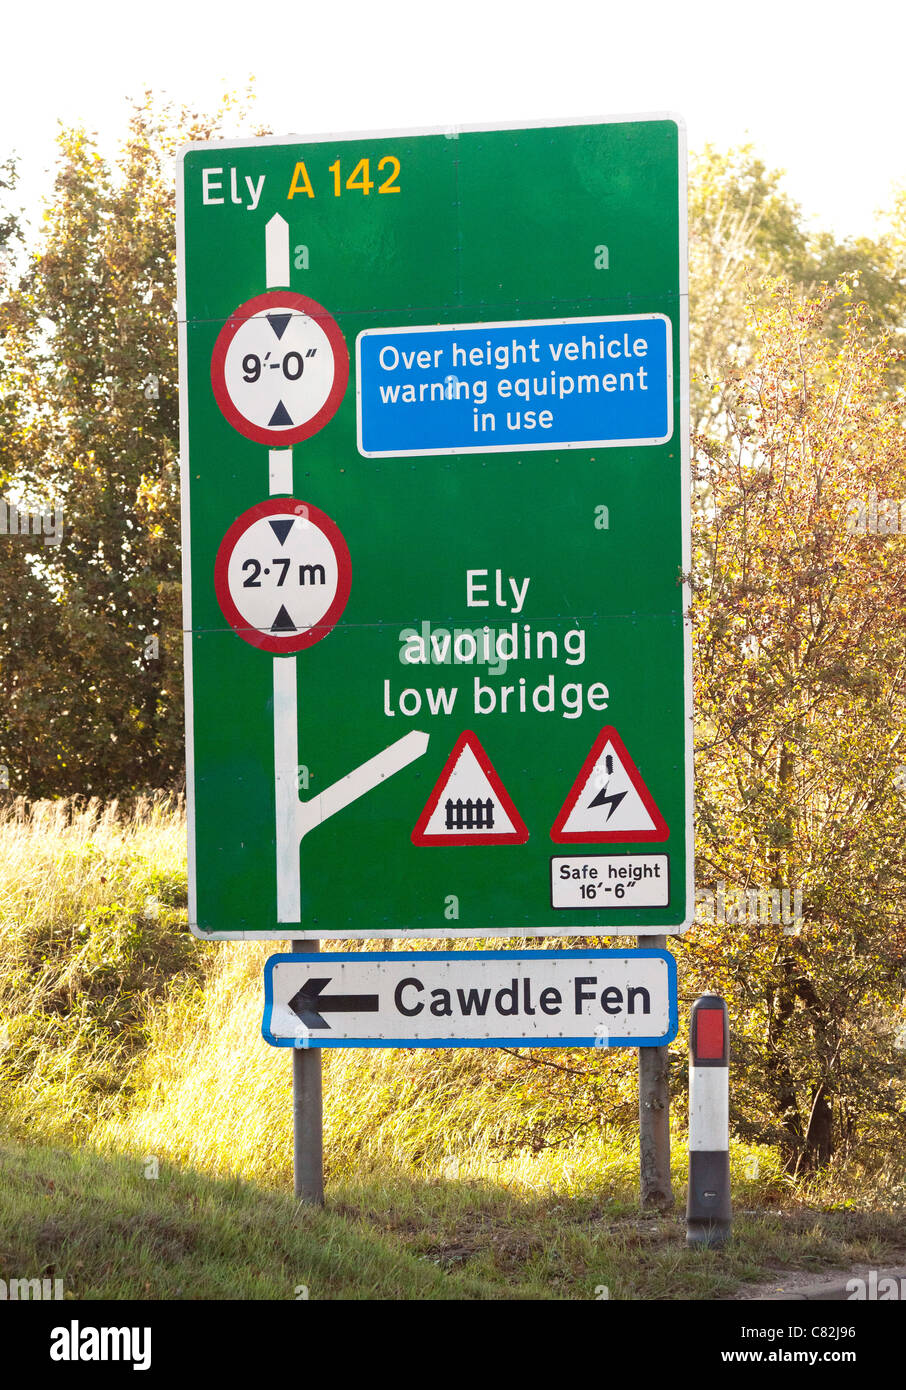 sign warning of height restrictions of low bridge ahead - Stock Image